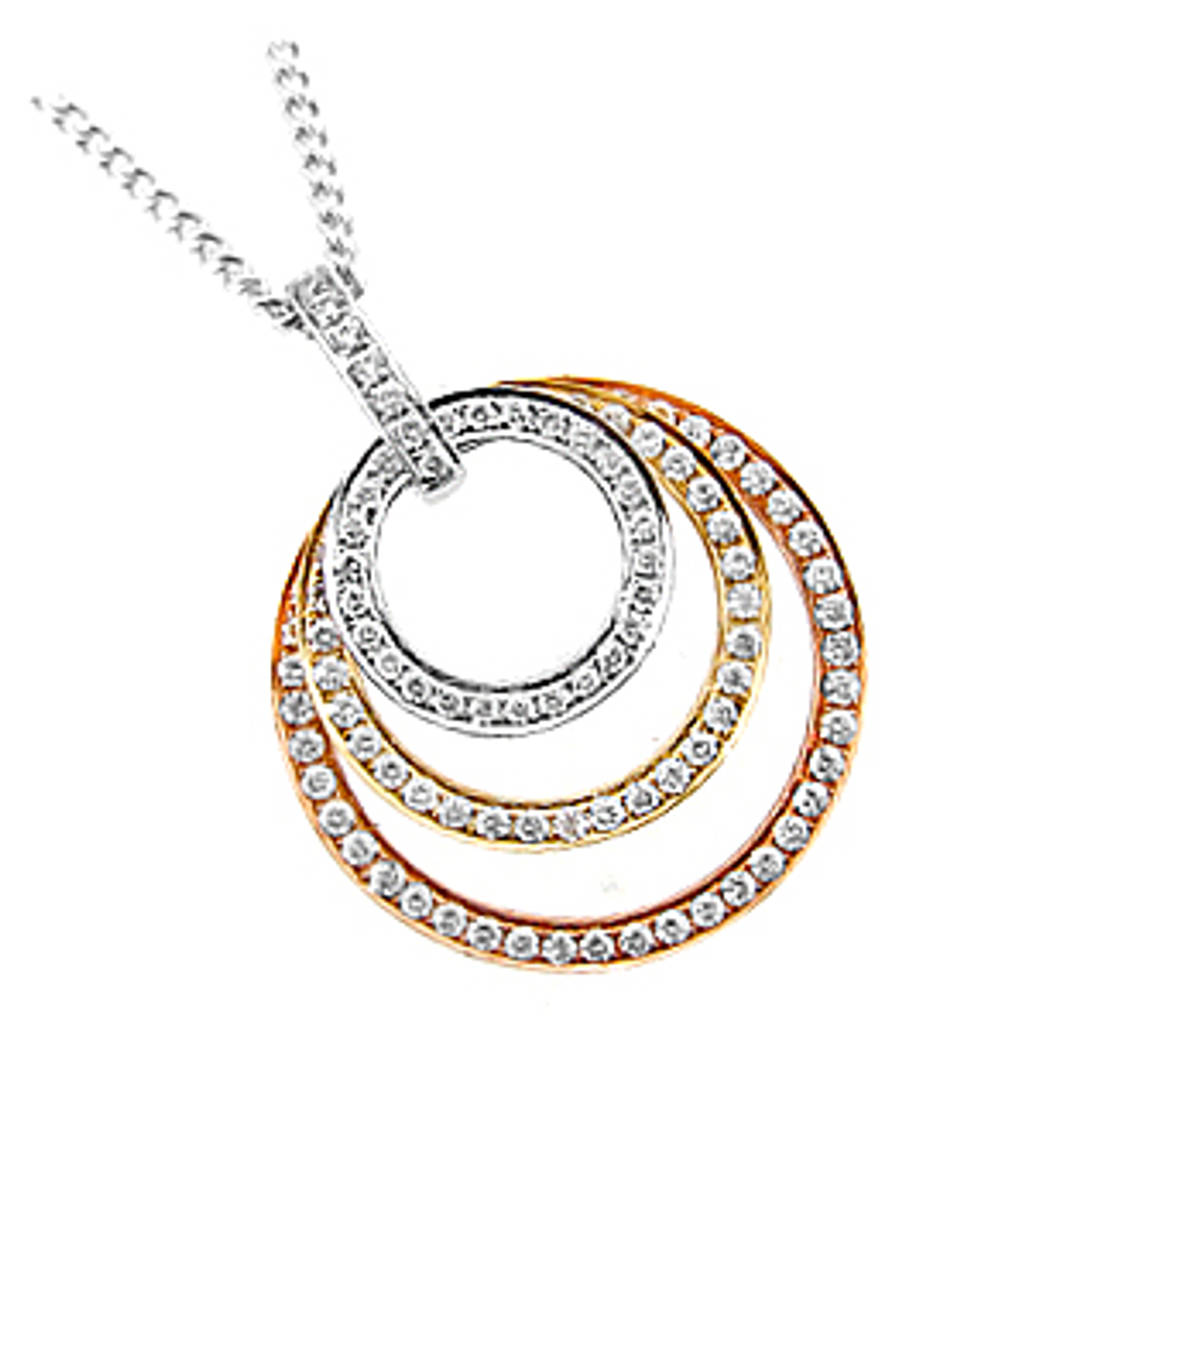 18 carat red/yellow/white gold pendant with 0.67cts diamonds